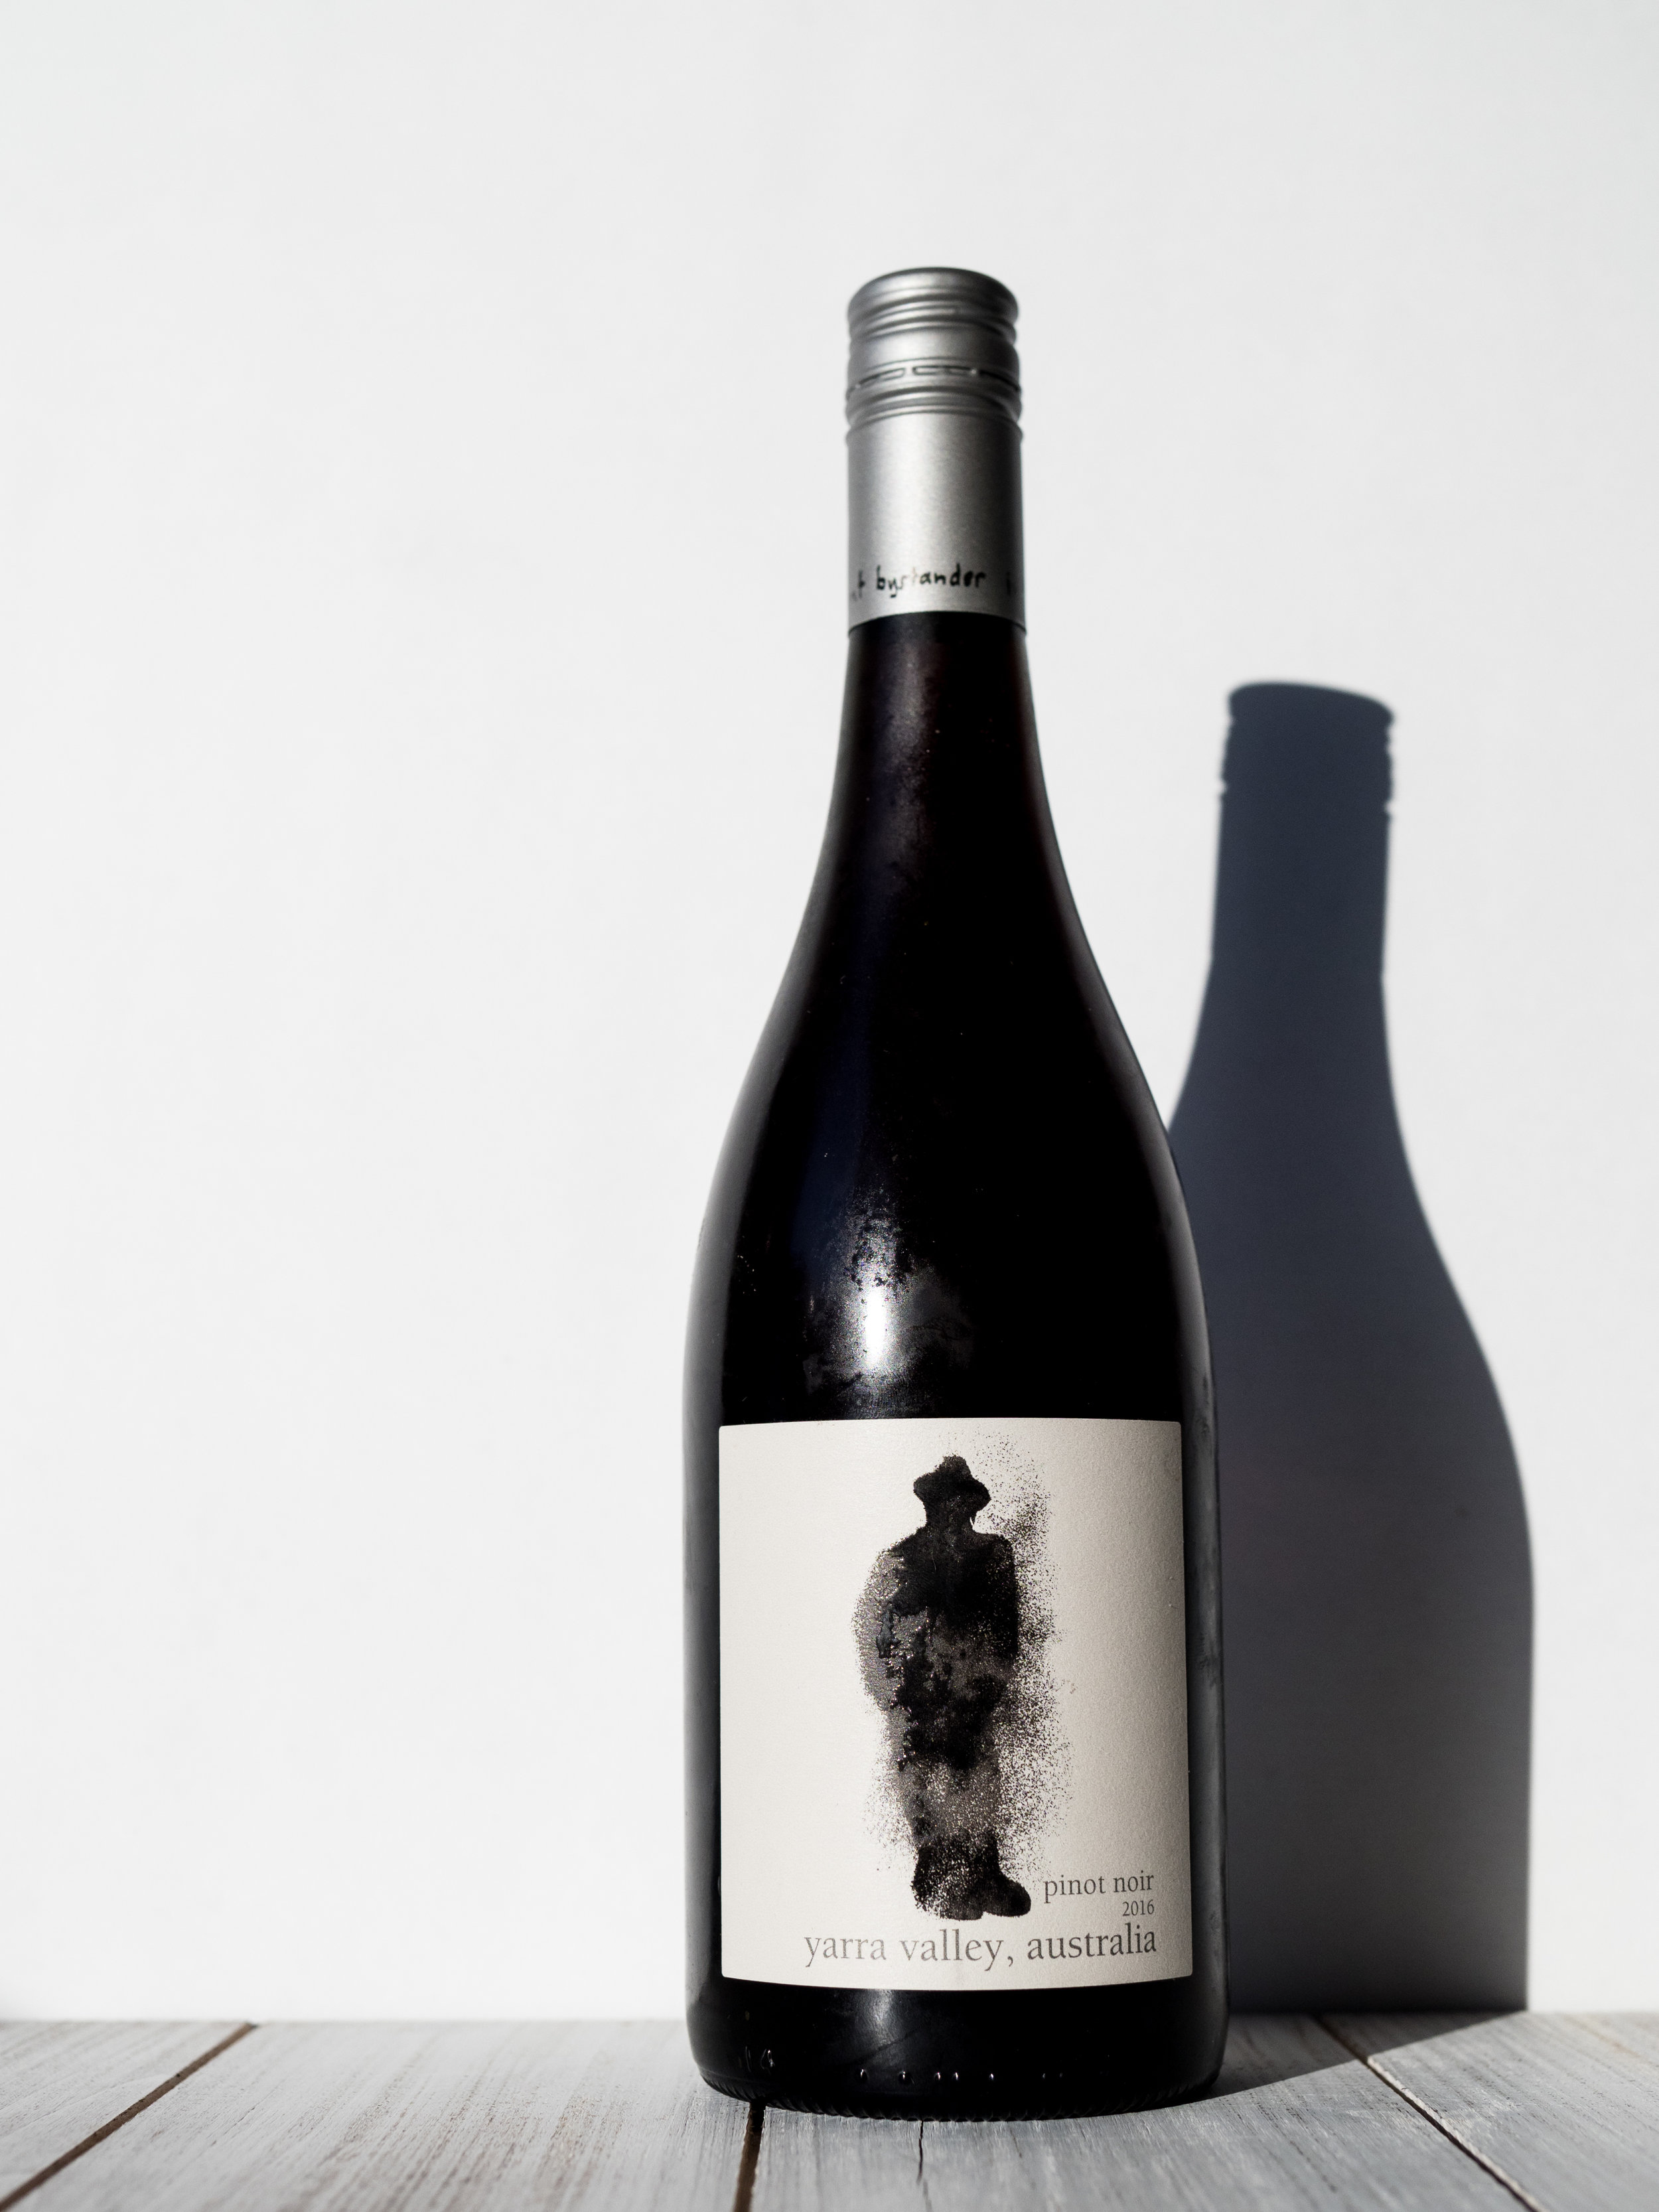 Musings by the Glass - Costco Corner - 2016 Innocent Bystander Pinot Noir (Yarra Valley)